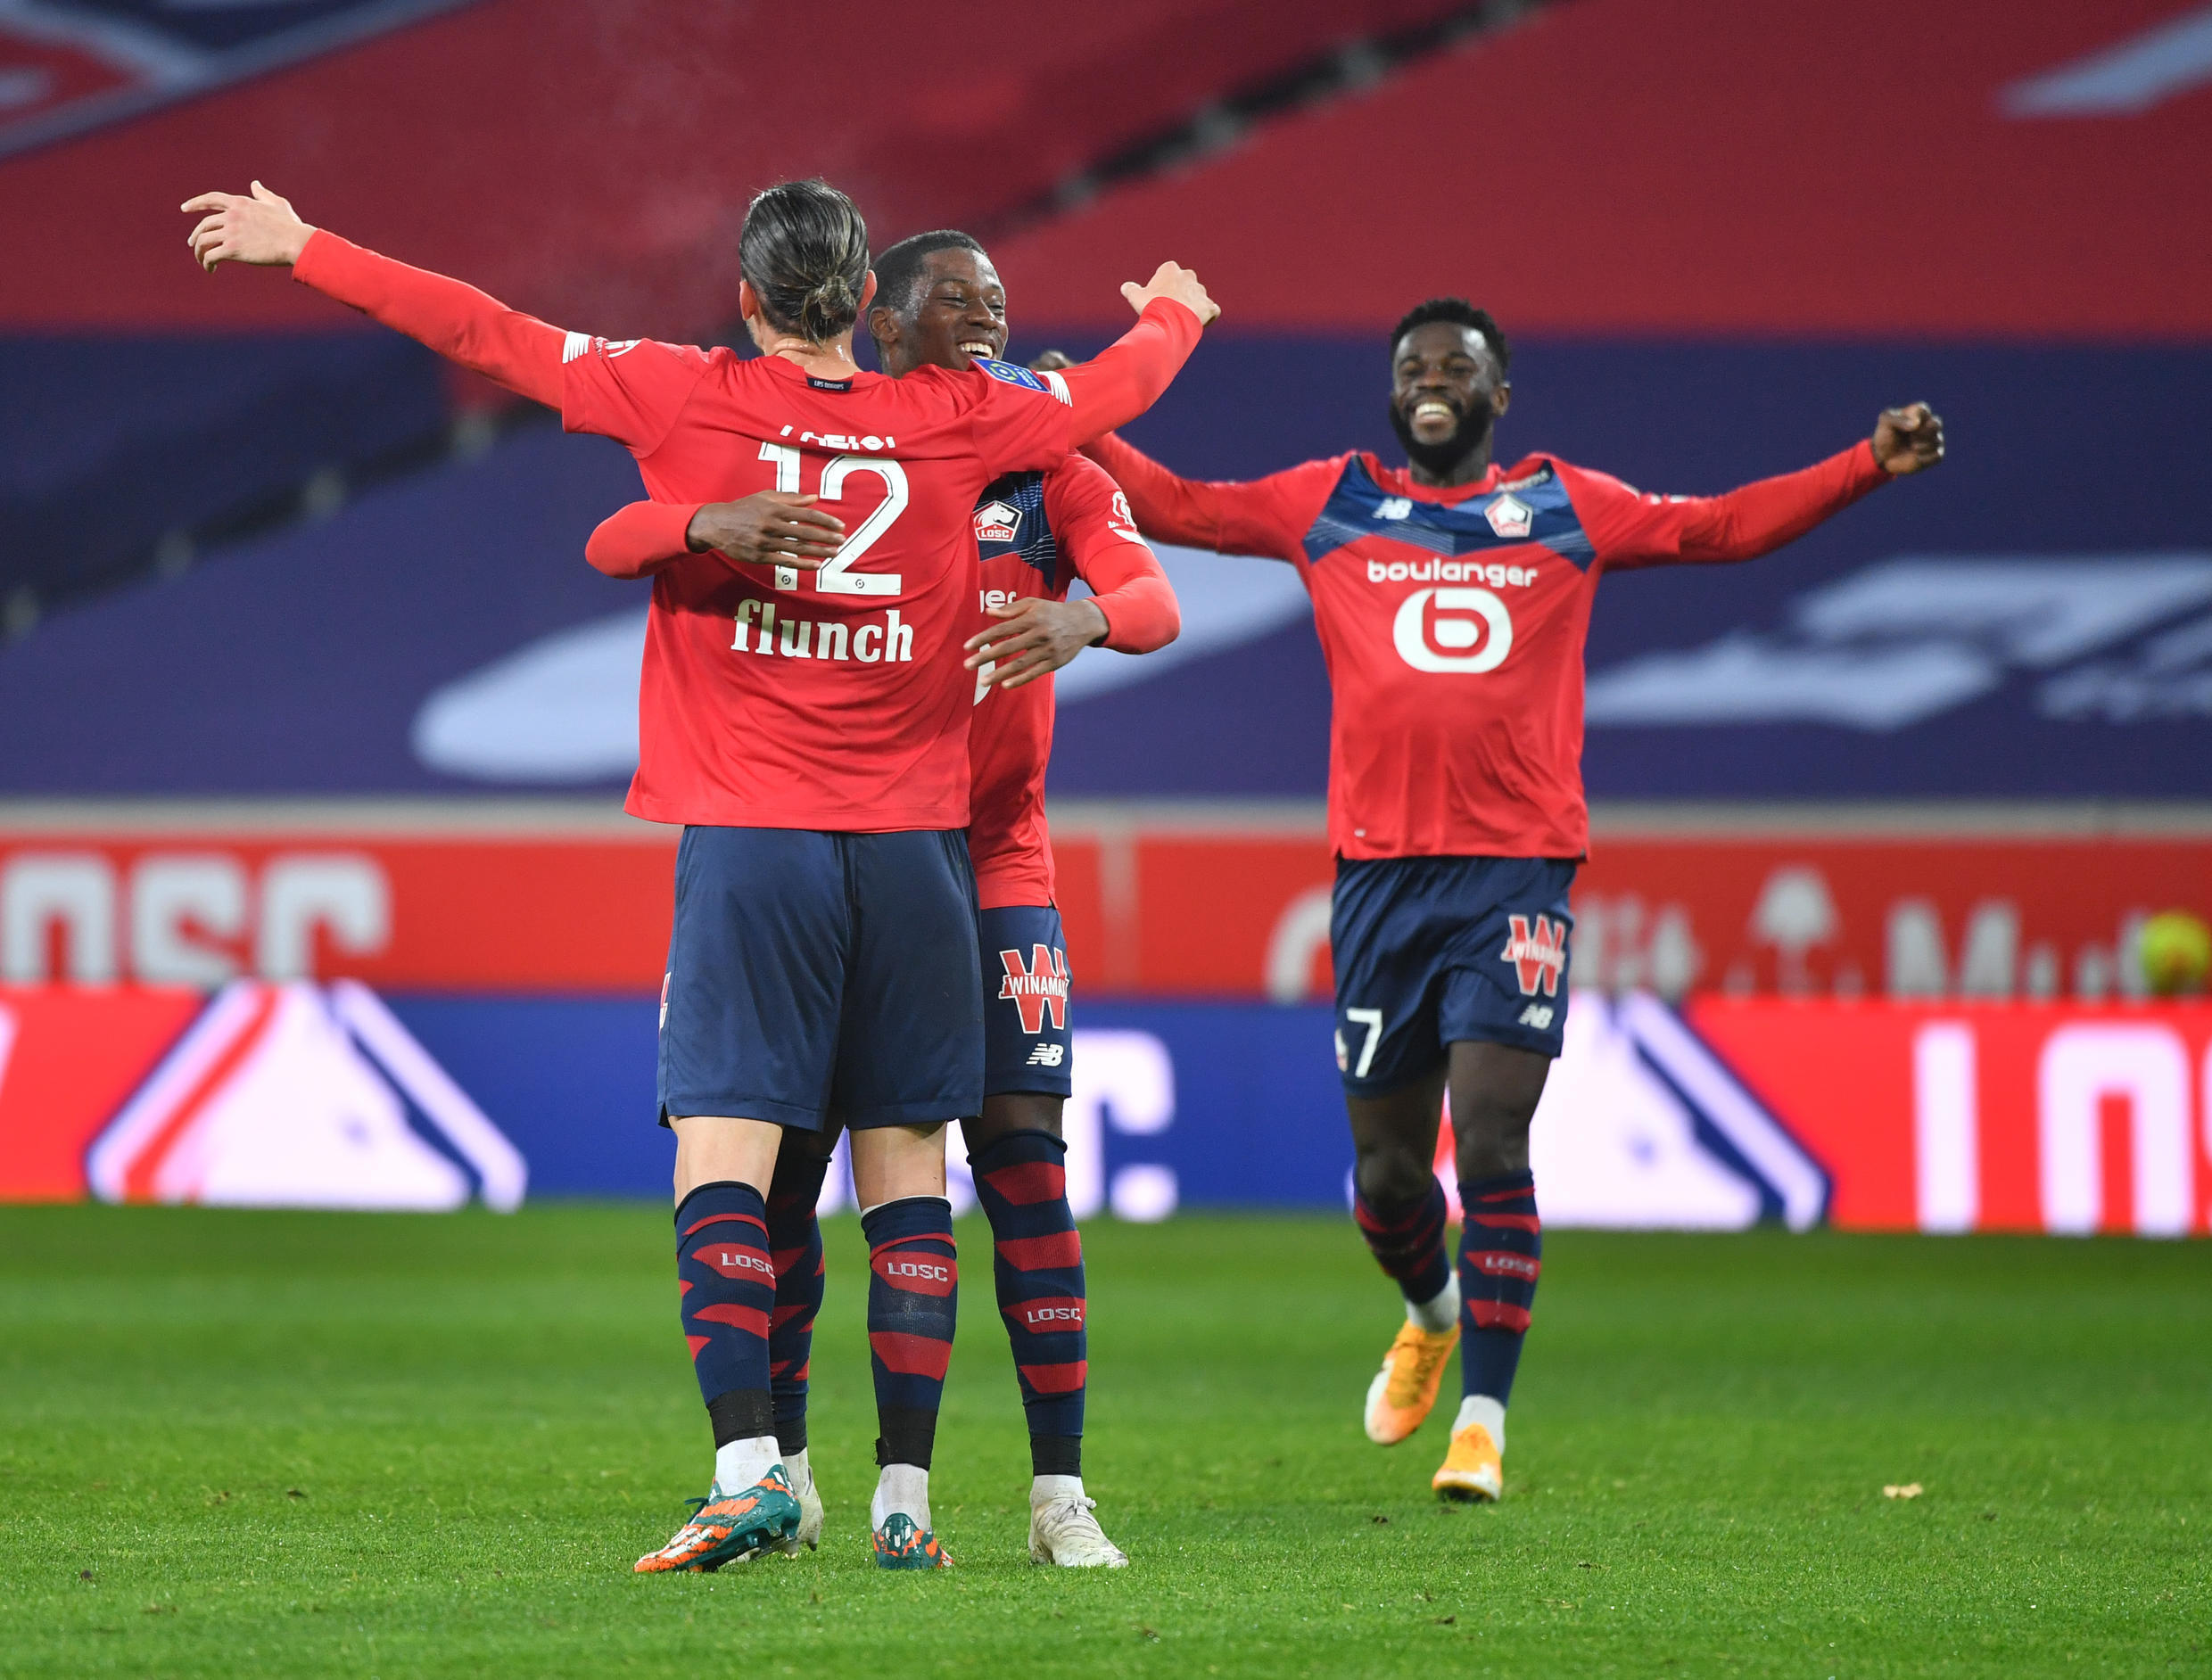 A equipa do Lille ocupa o 2° lugar na Ligue 1.